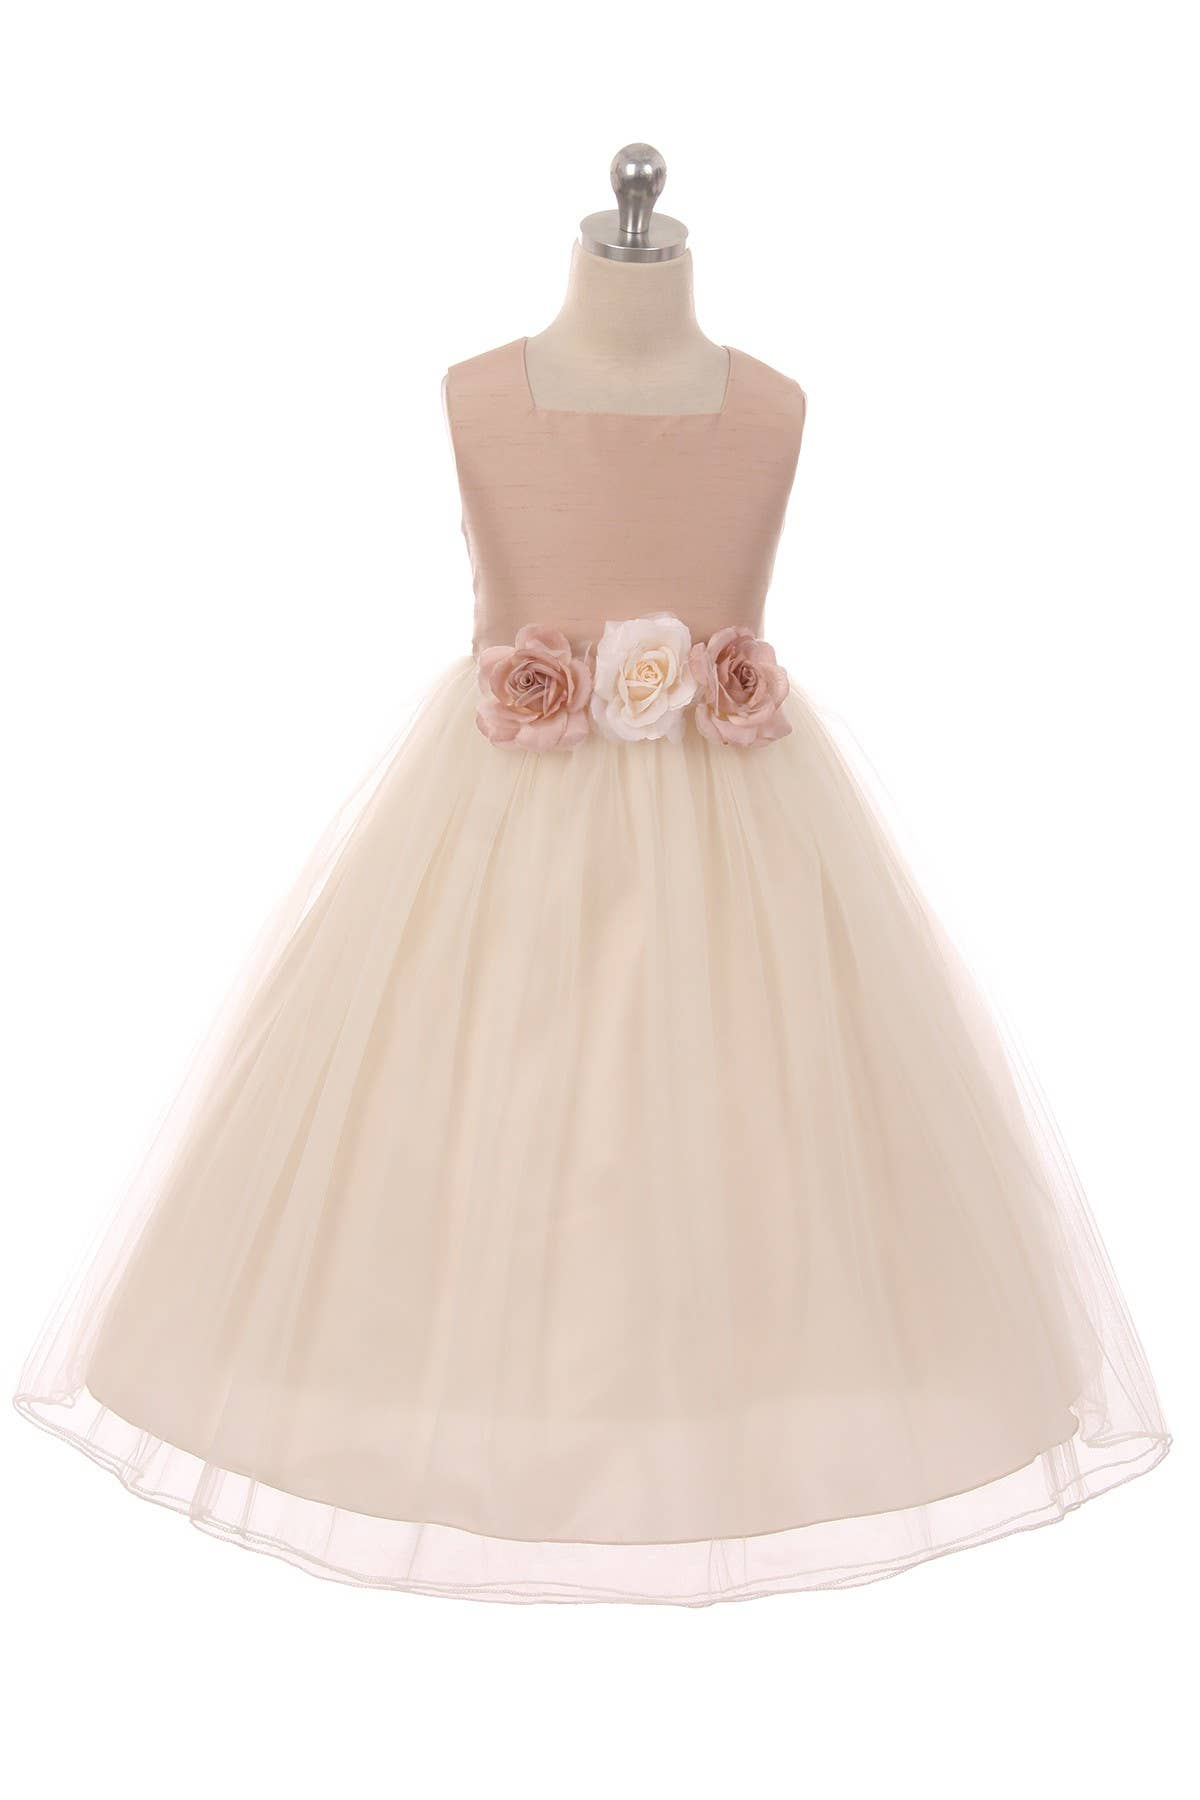 Dusty Rose and Cream Vintage Rose Satin Tulle Dress